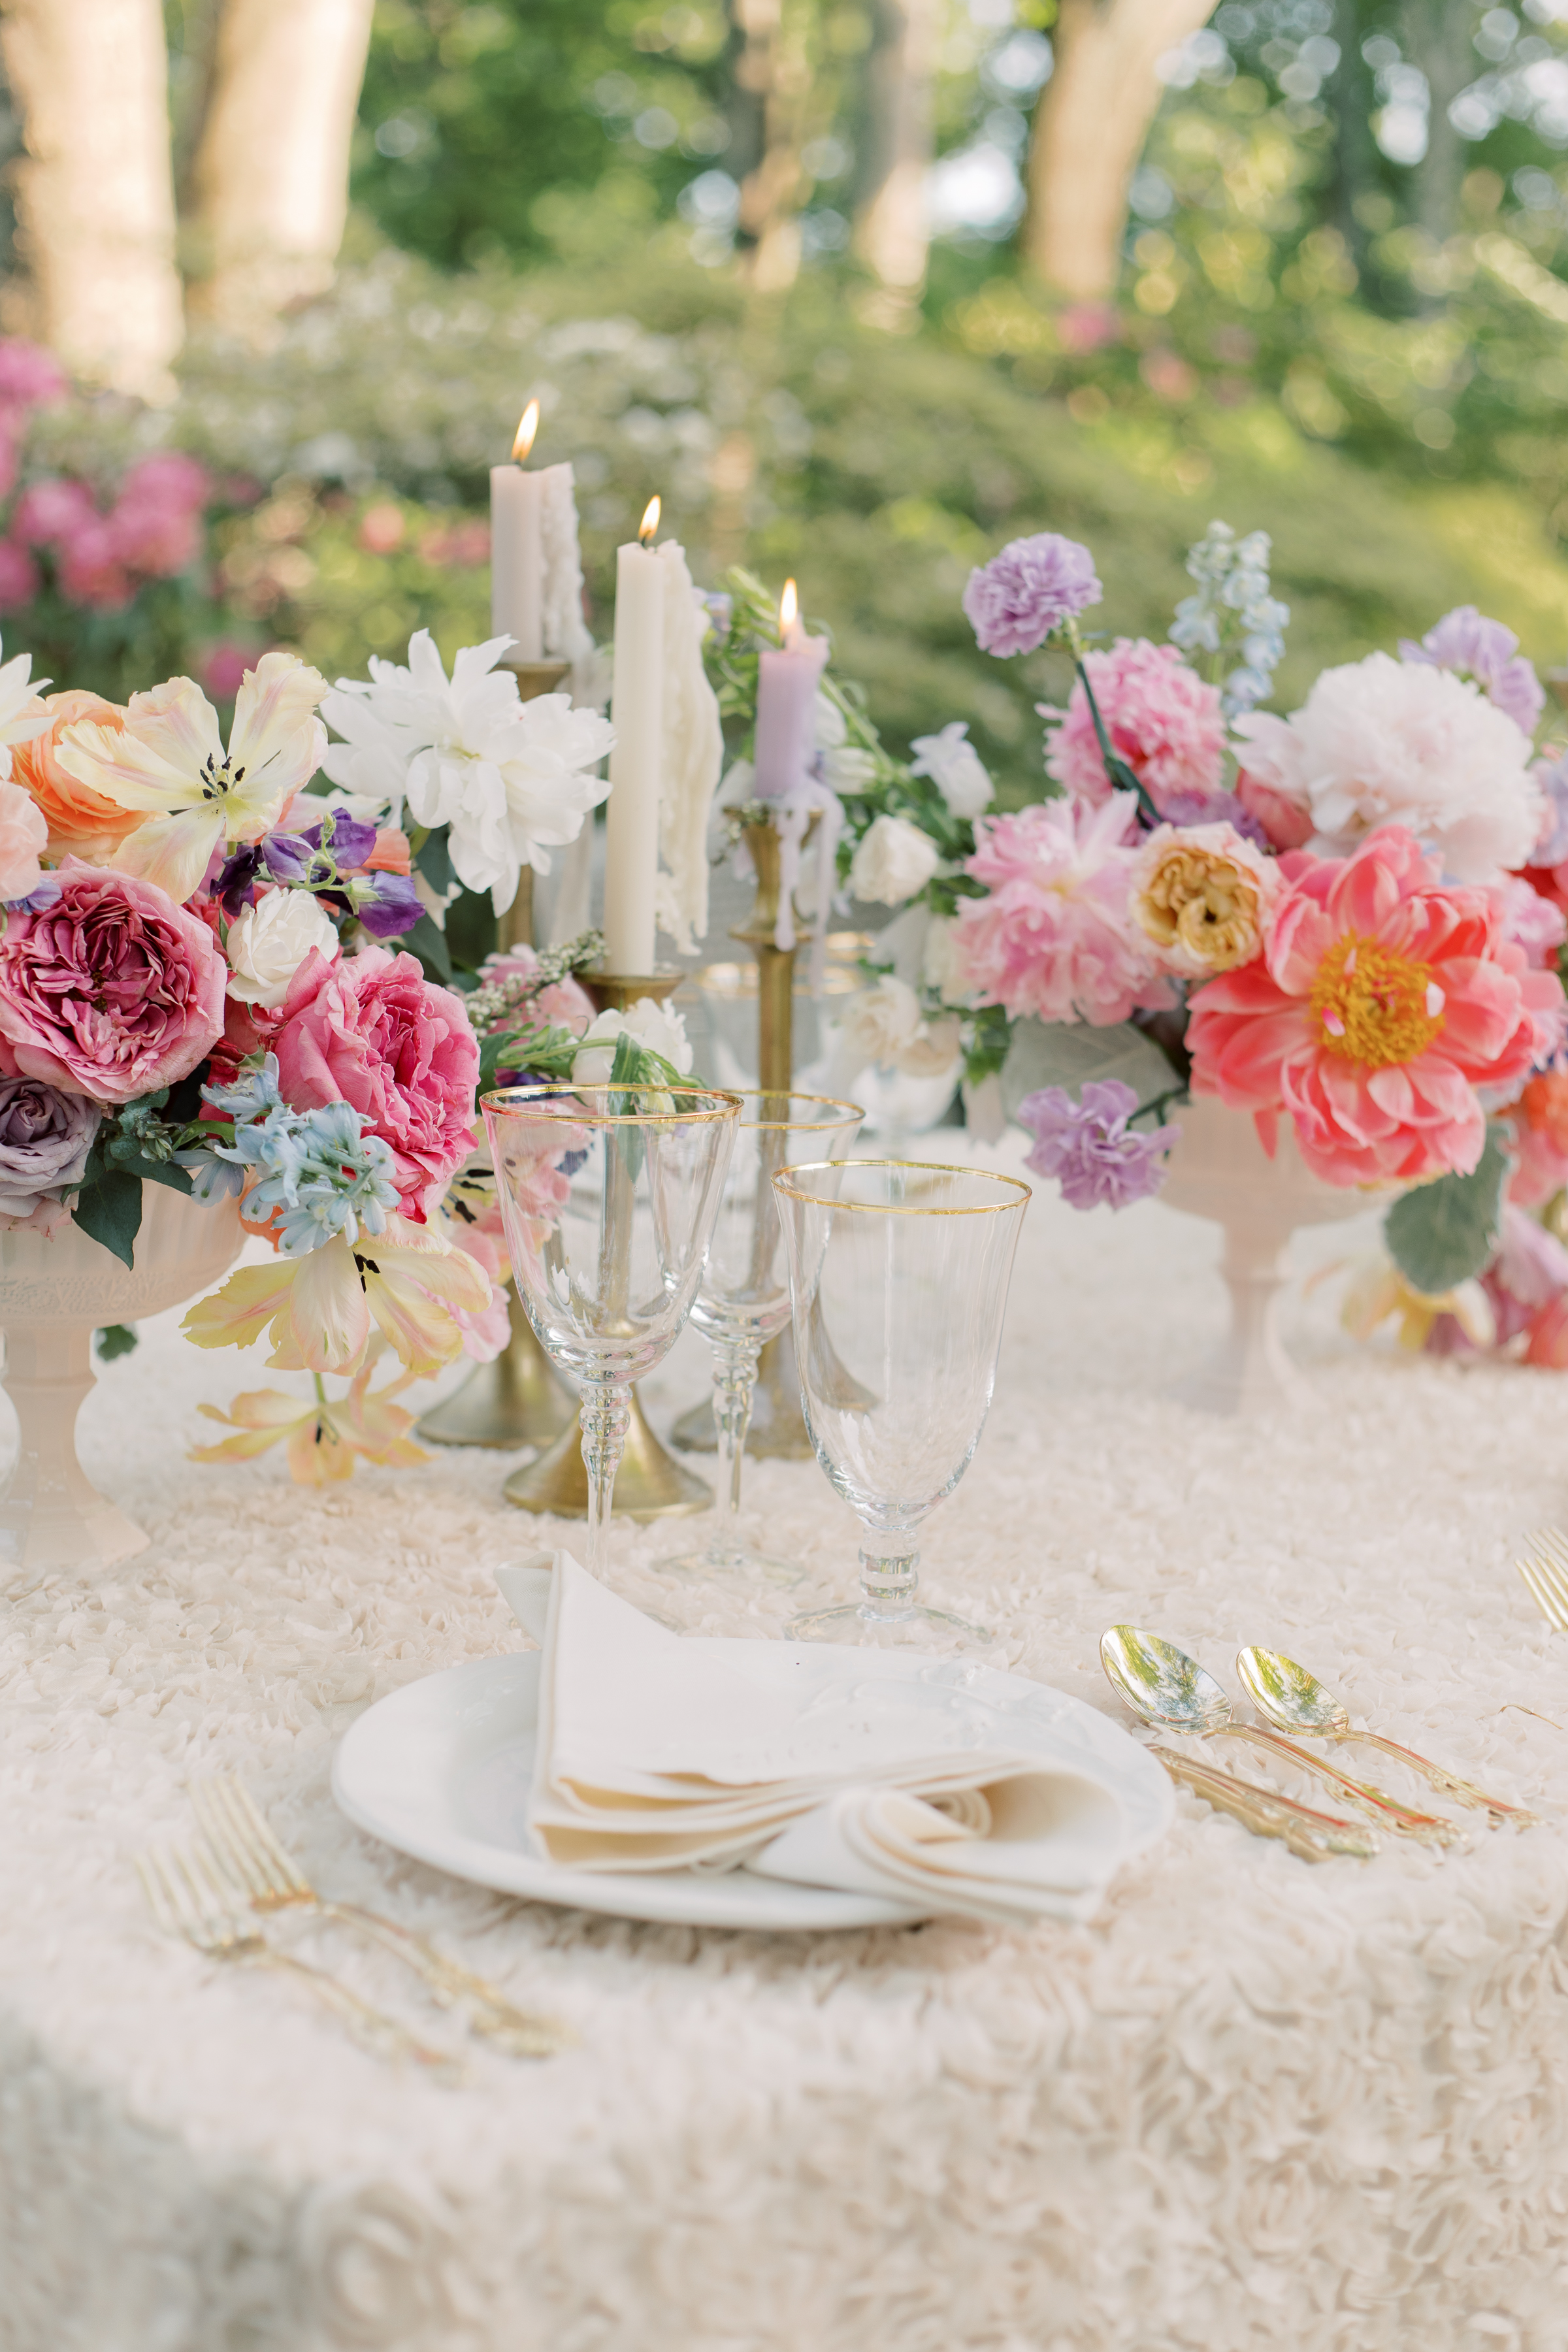 Faith Roper Photography and East Made Co Nashville wedding planner at the Estate at Cherokee Dock wedding inspired by Monet Hybrid Co-85.jpg